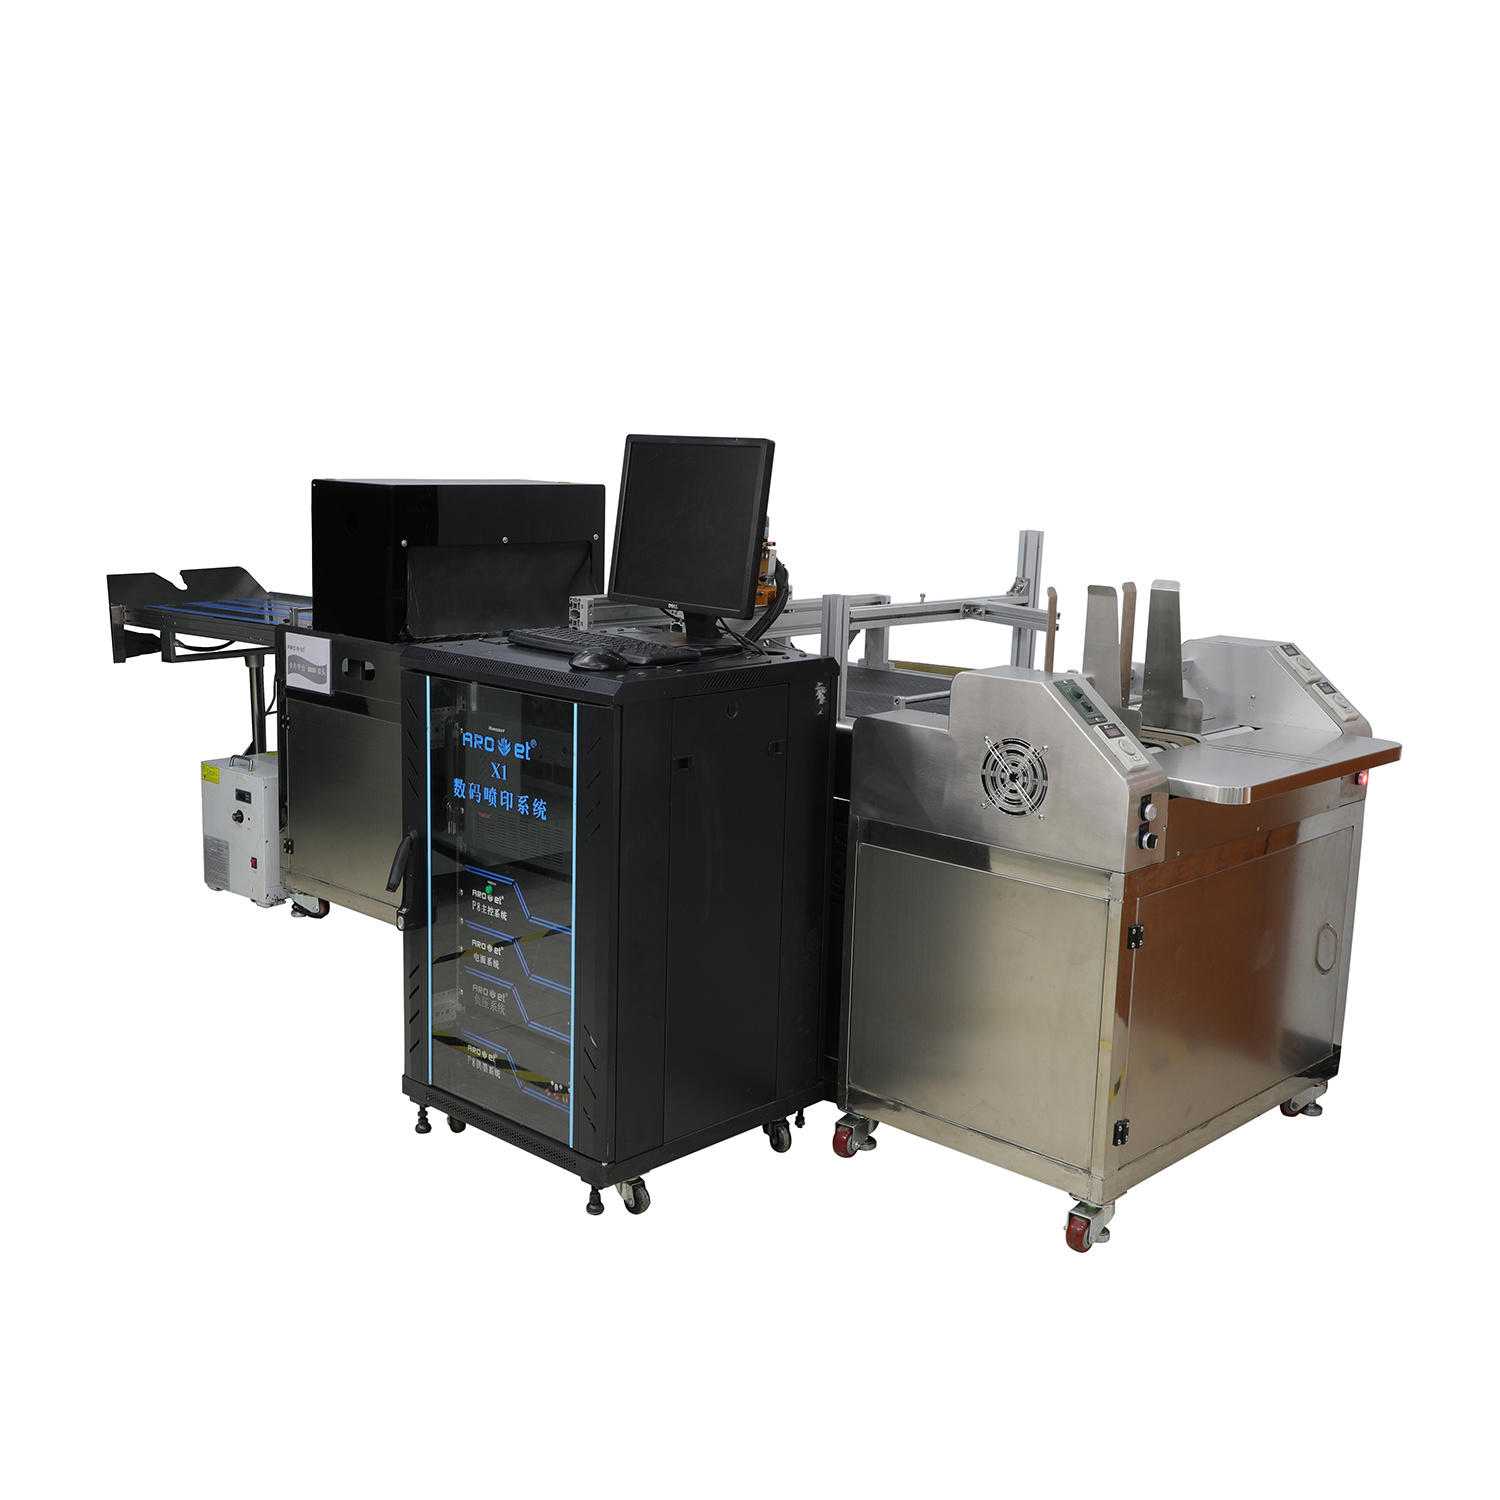 Sheet-Fed Large Format Variable Data Printing System